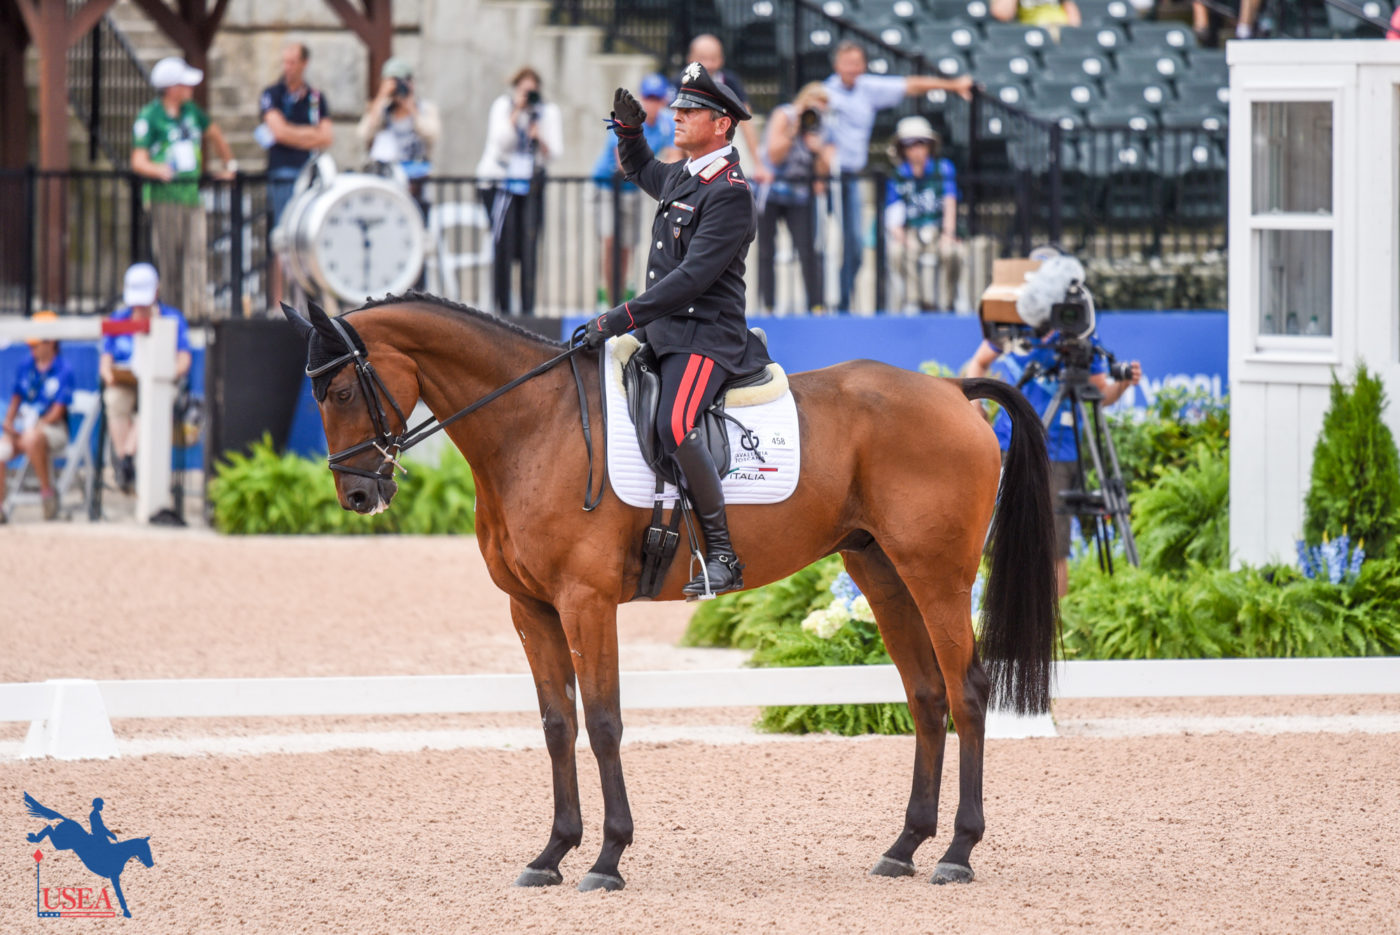 18thT - Stefano Brecciaroli and Byrnesgrove First Diamond (ITA)